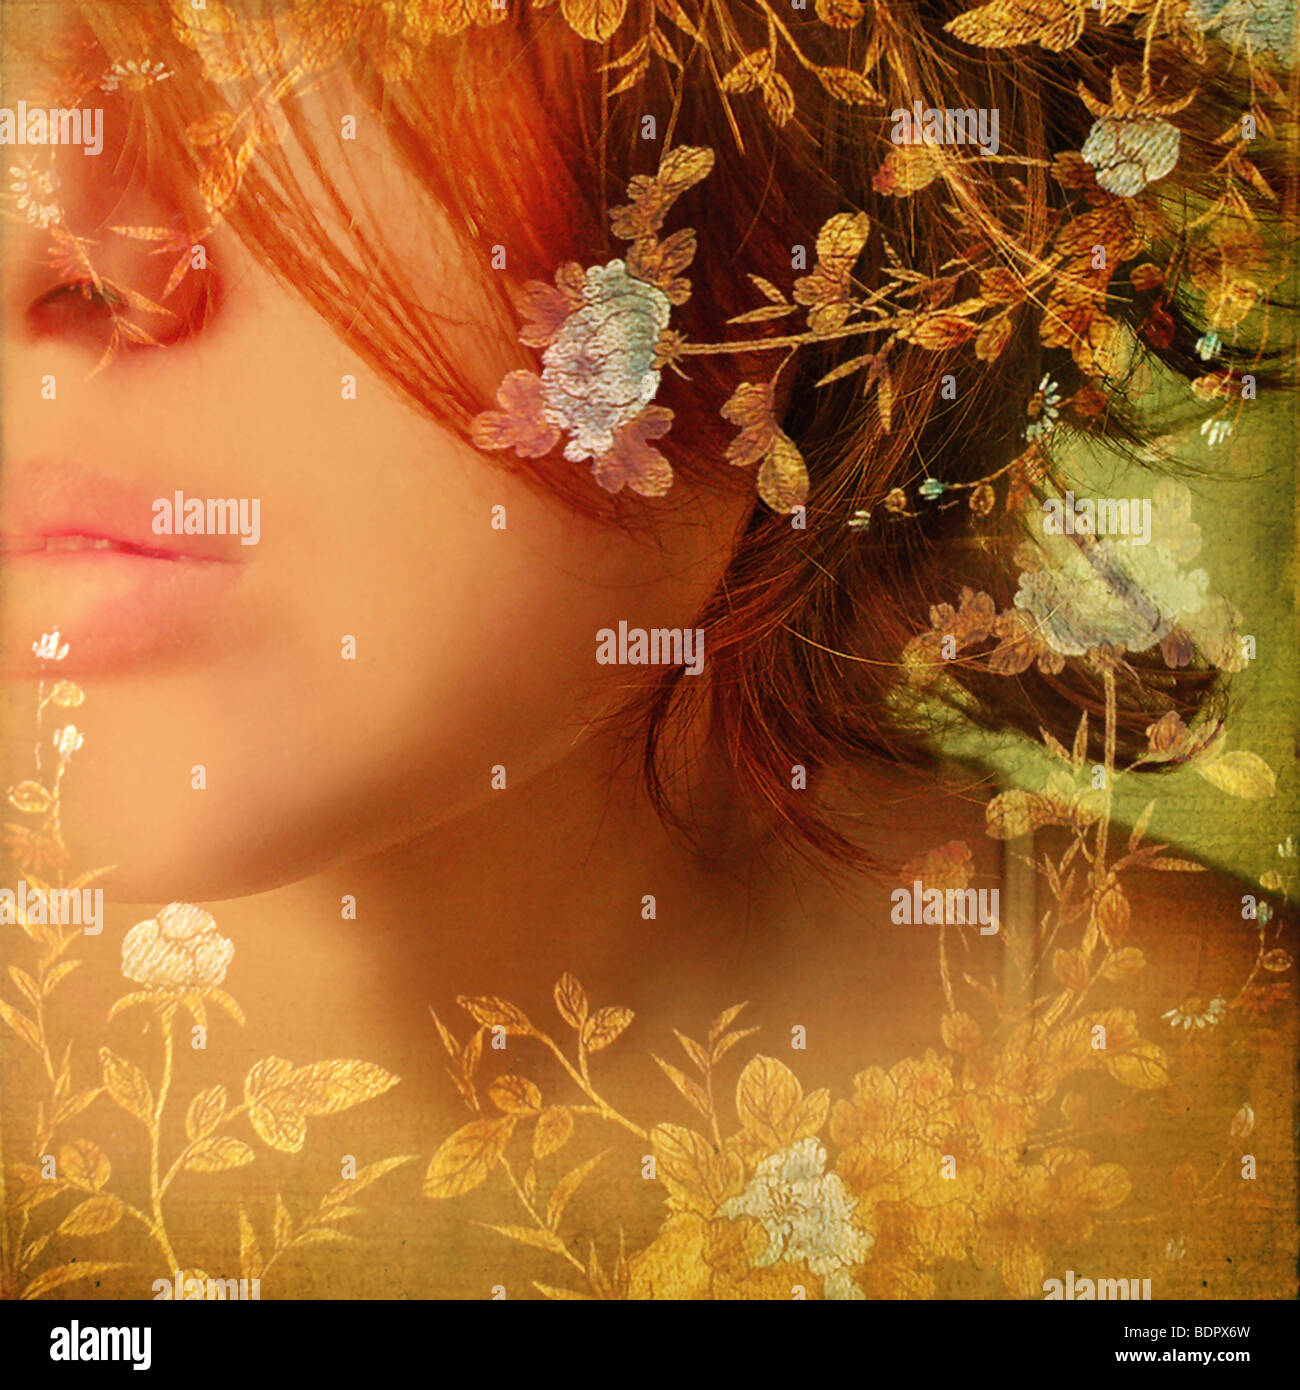 The face of a young woman overlaid with a floral design. - Stock Image